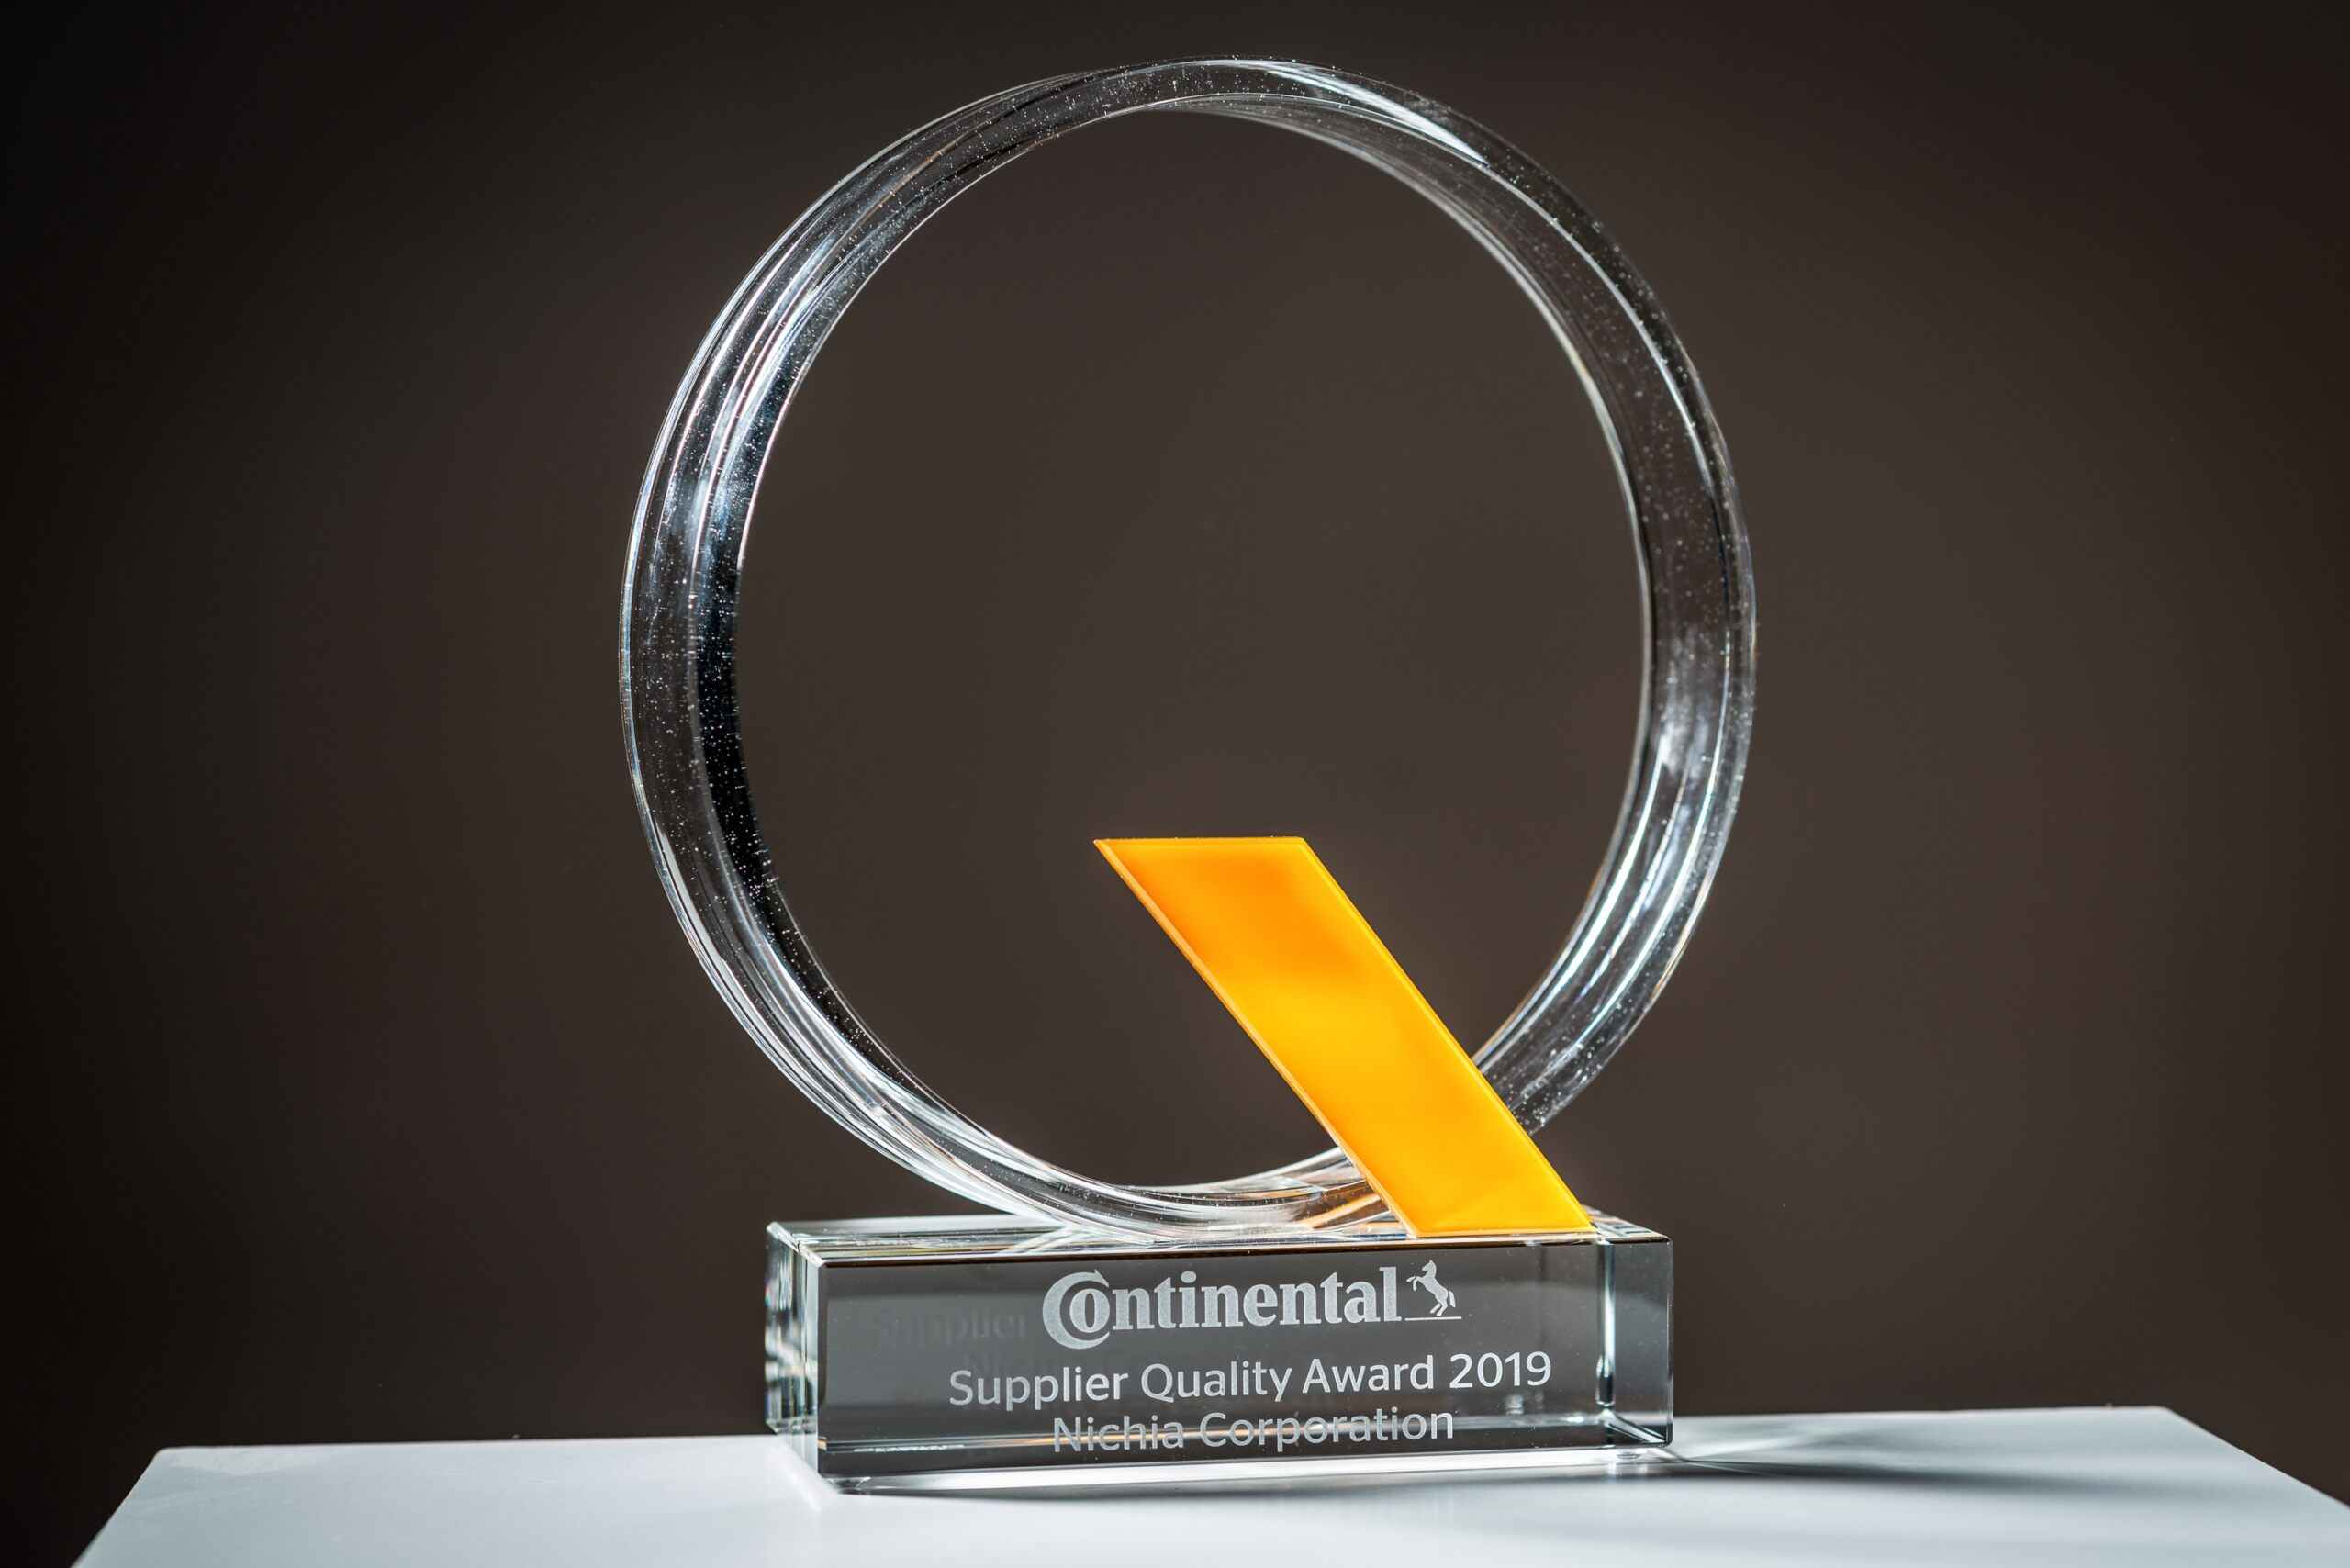 Continental Supplier of the Year 2019